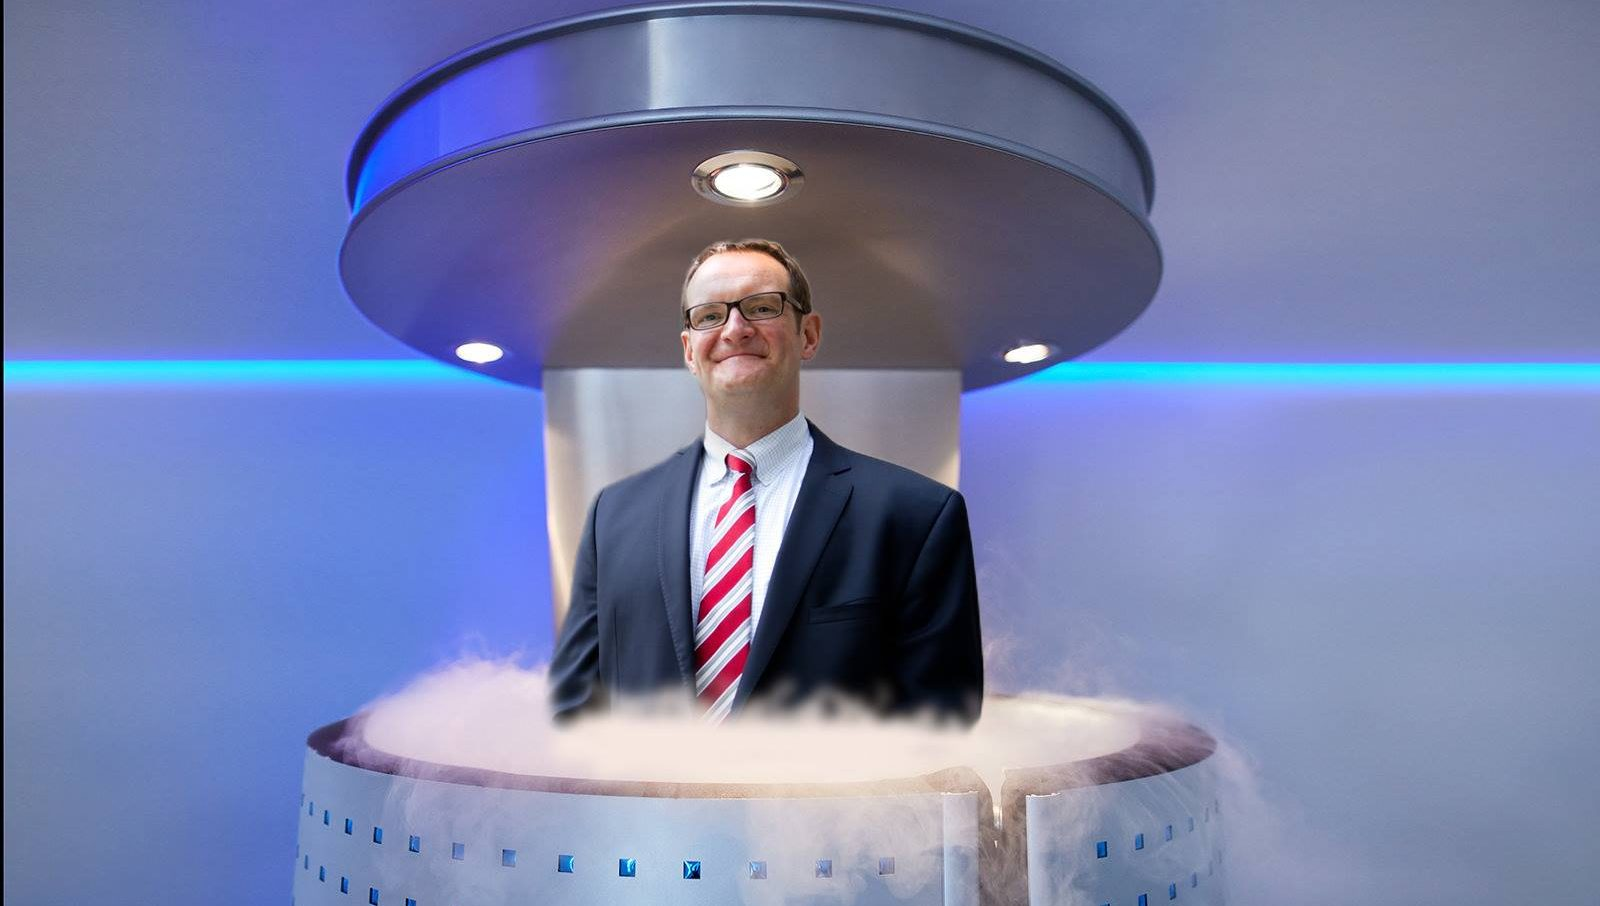 Dean Nondorf Returns to Cryo-Freezer as Prospie Season Ends